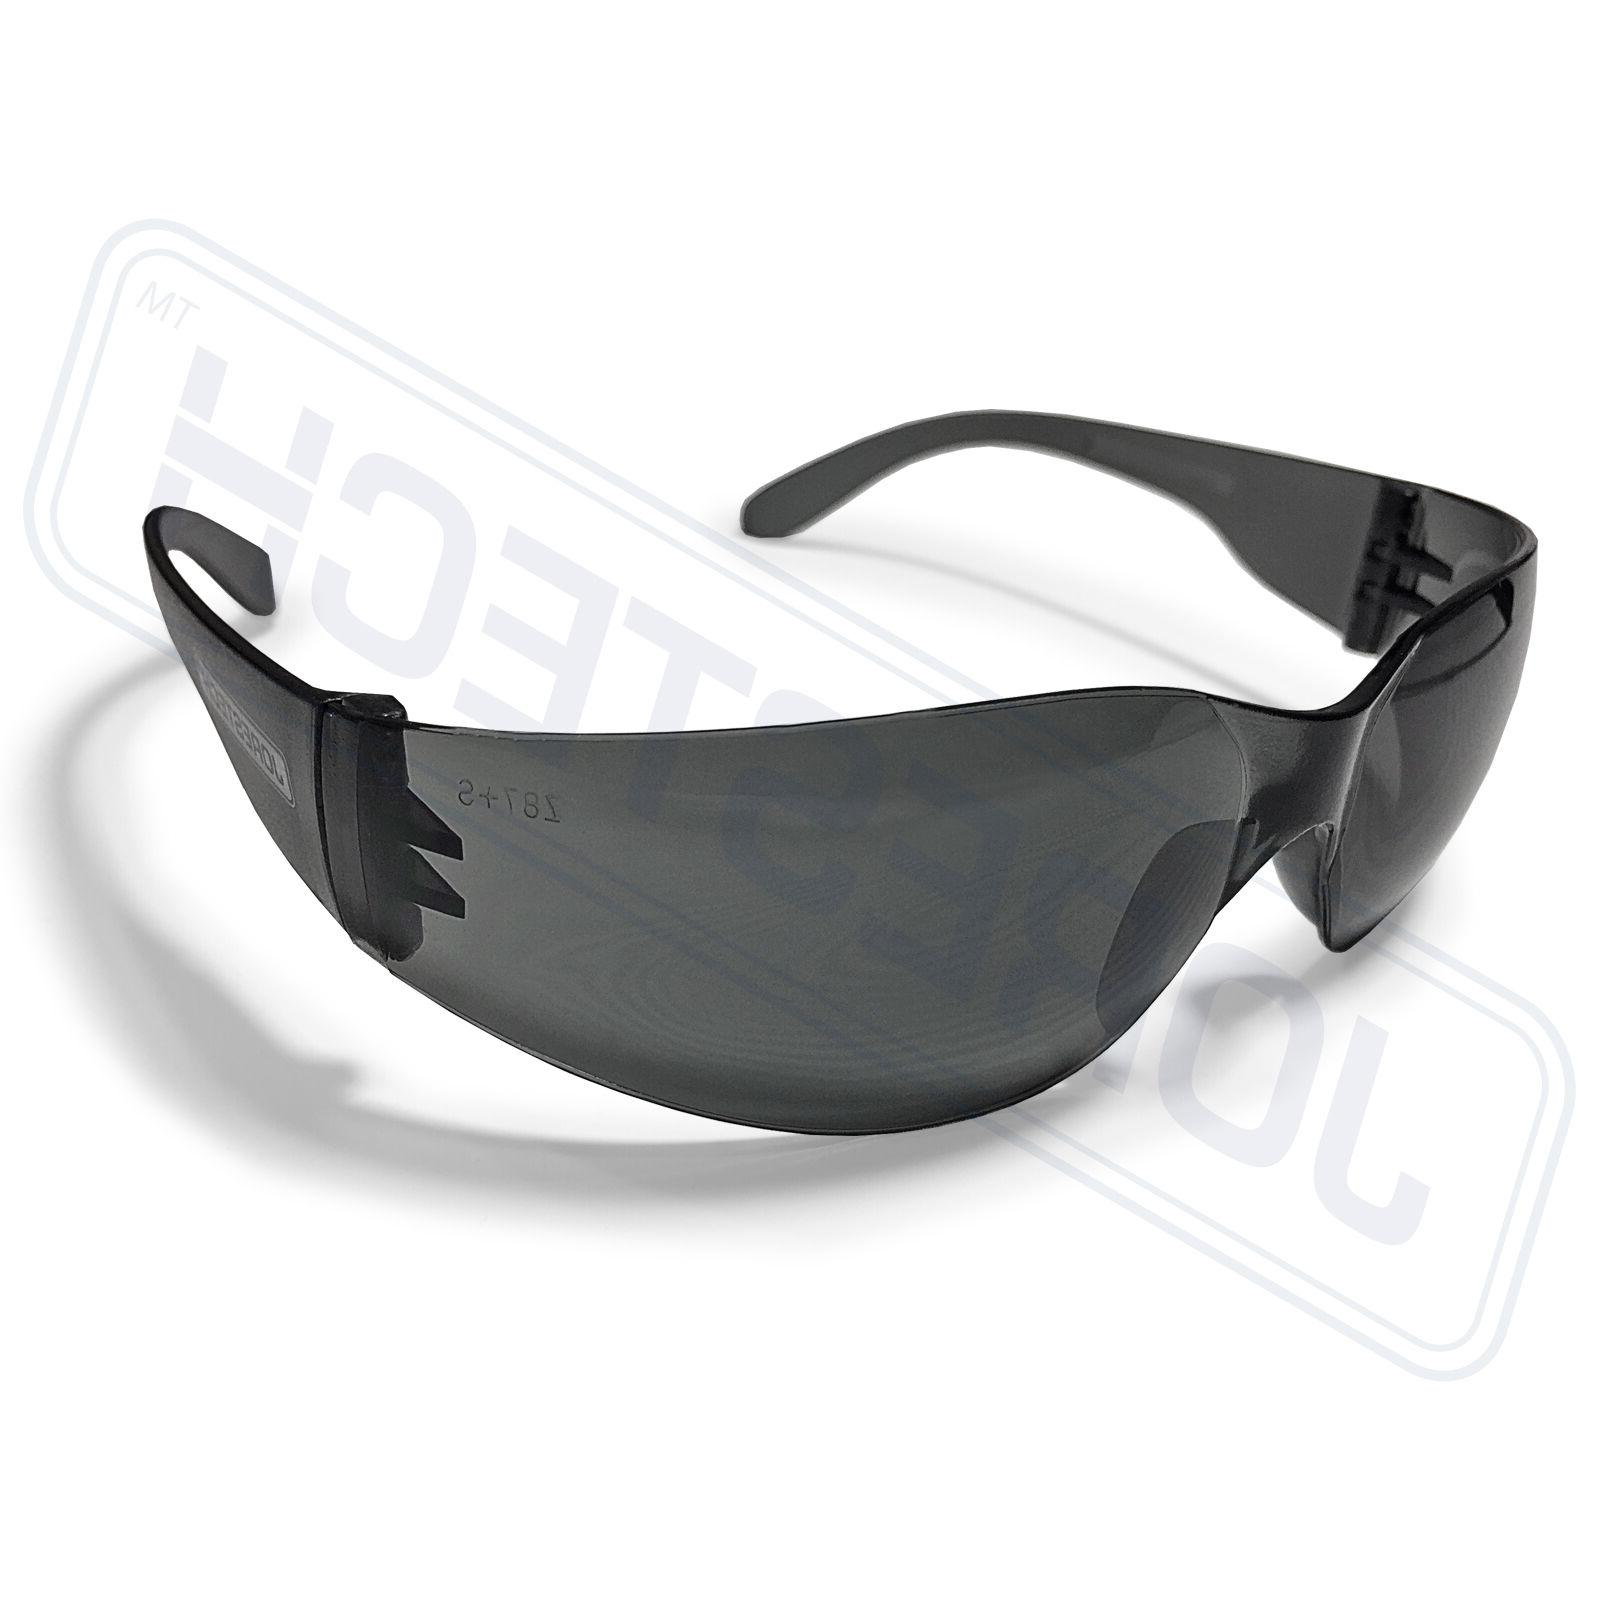 12 144 CLEAR/SMOKE LENS SAFETY